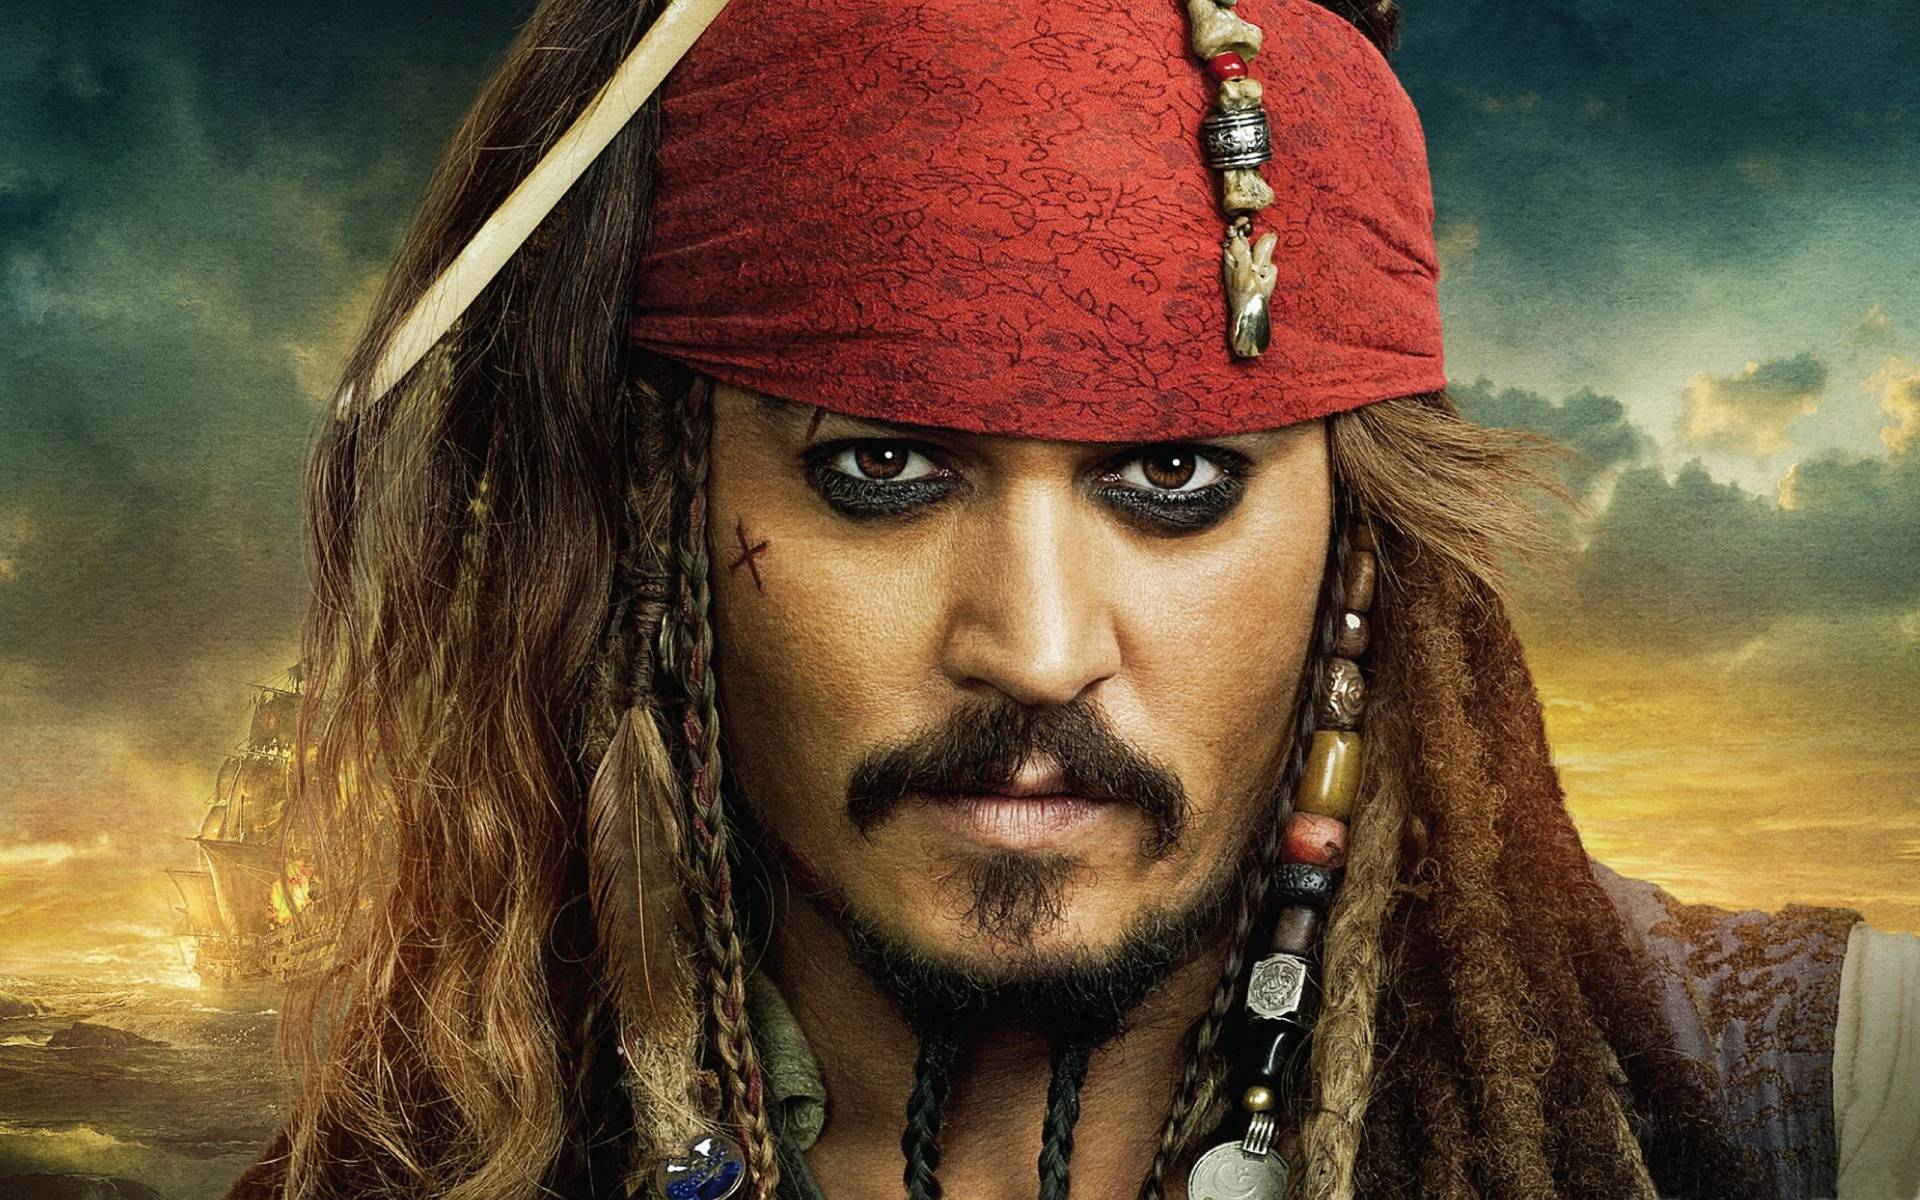 Jack Sparrow Wallpapers - Full HD wallpaper search